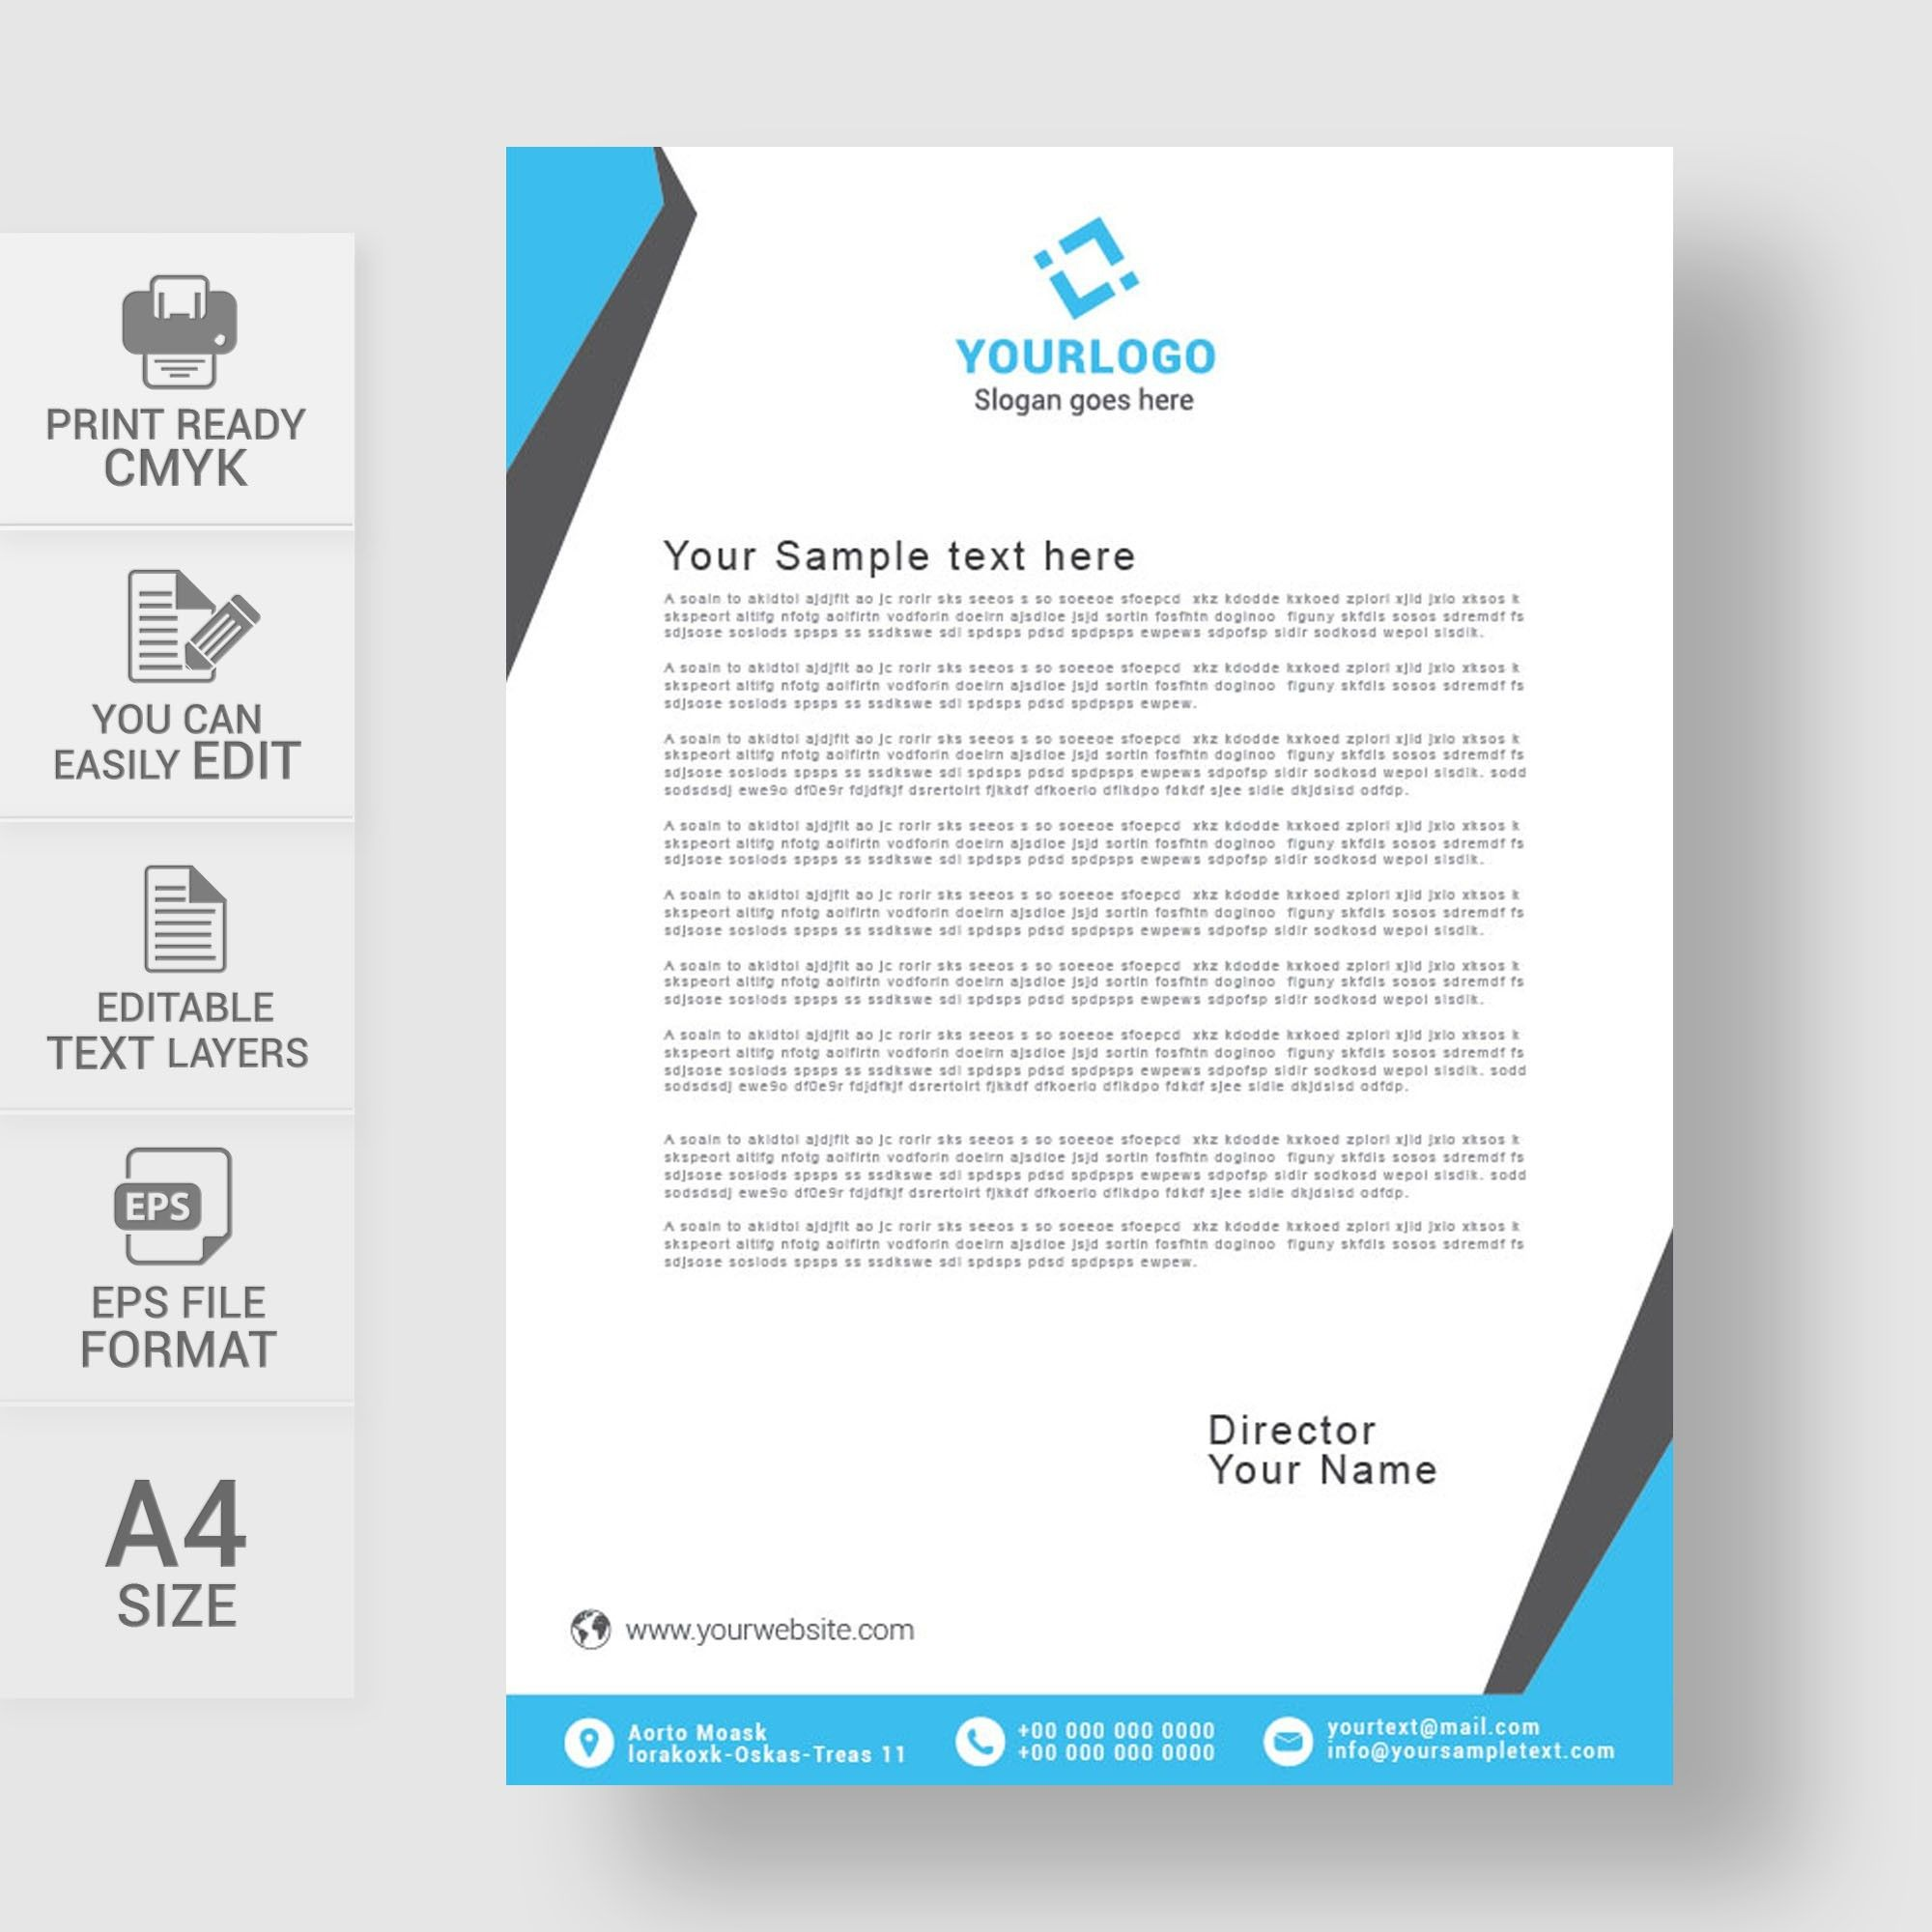 How To Make A Postcard In Word - arxiusarquitectura With Regard To Word Stationery Template Free